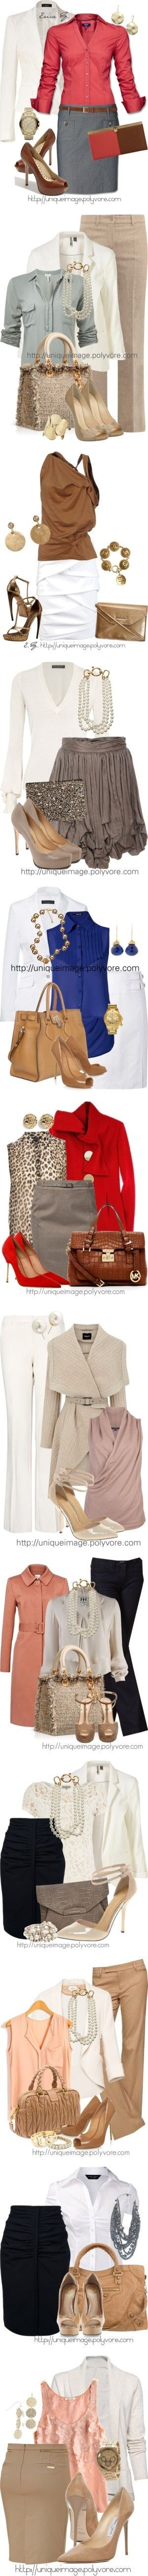 Fashion style...work attire ideas i used to jus want a job where i could dress like this lol still kinda do tho lol (: